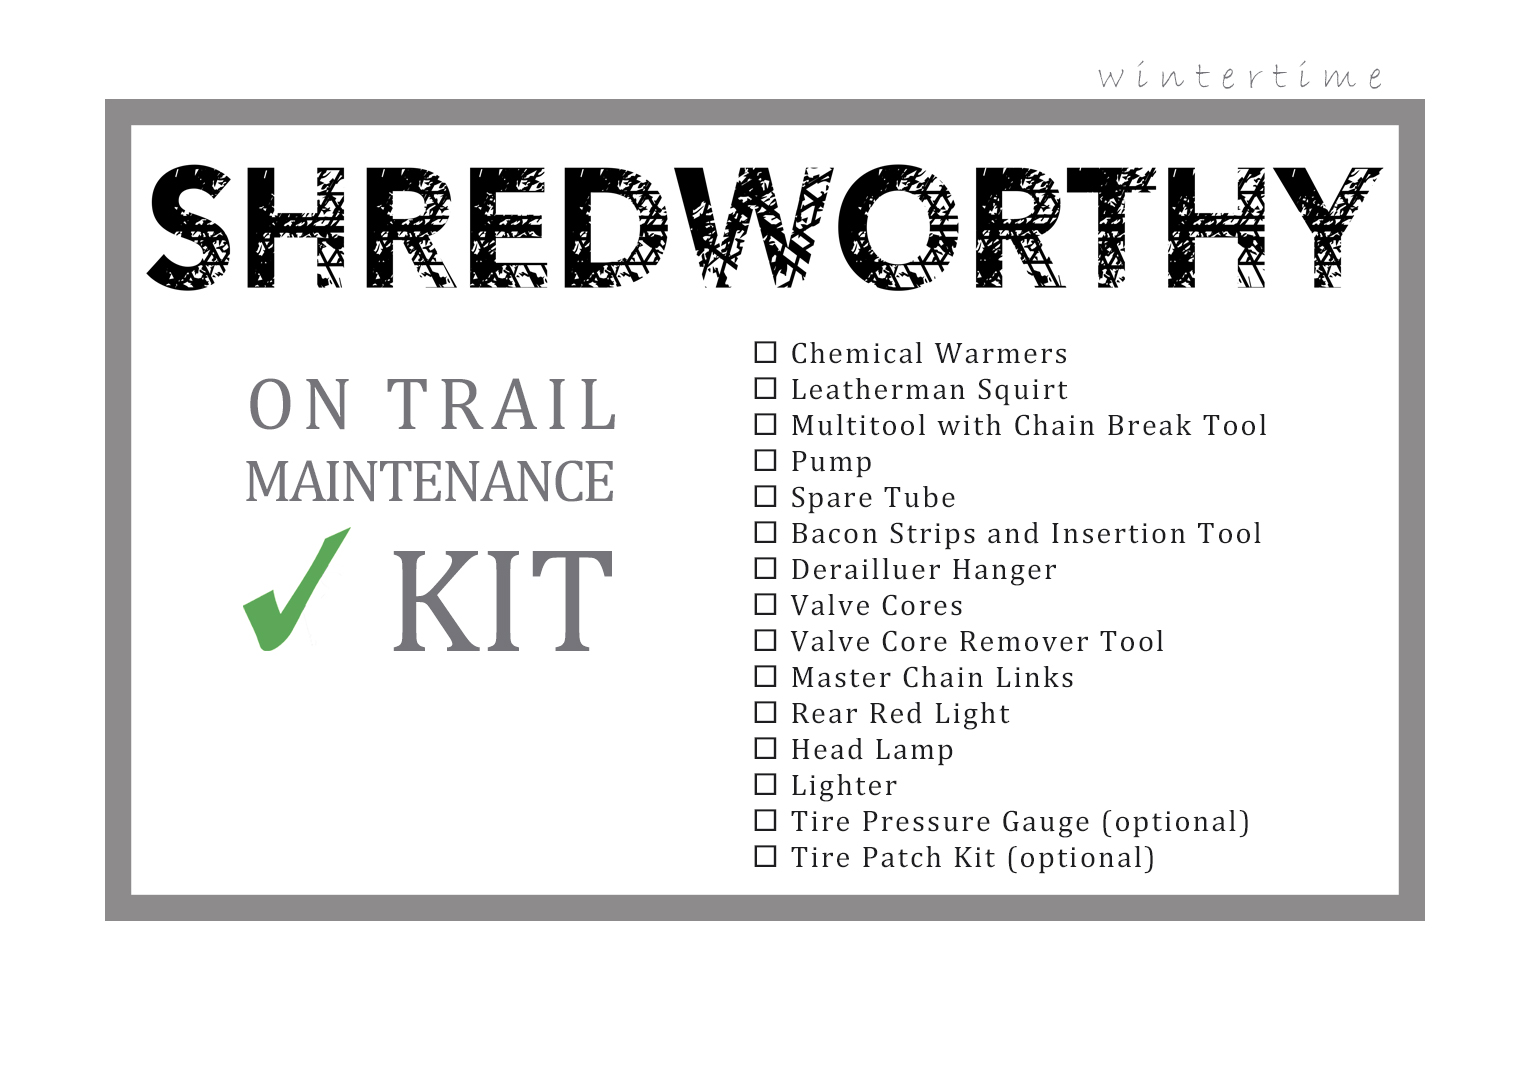 Winter riding trail maintenance kit